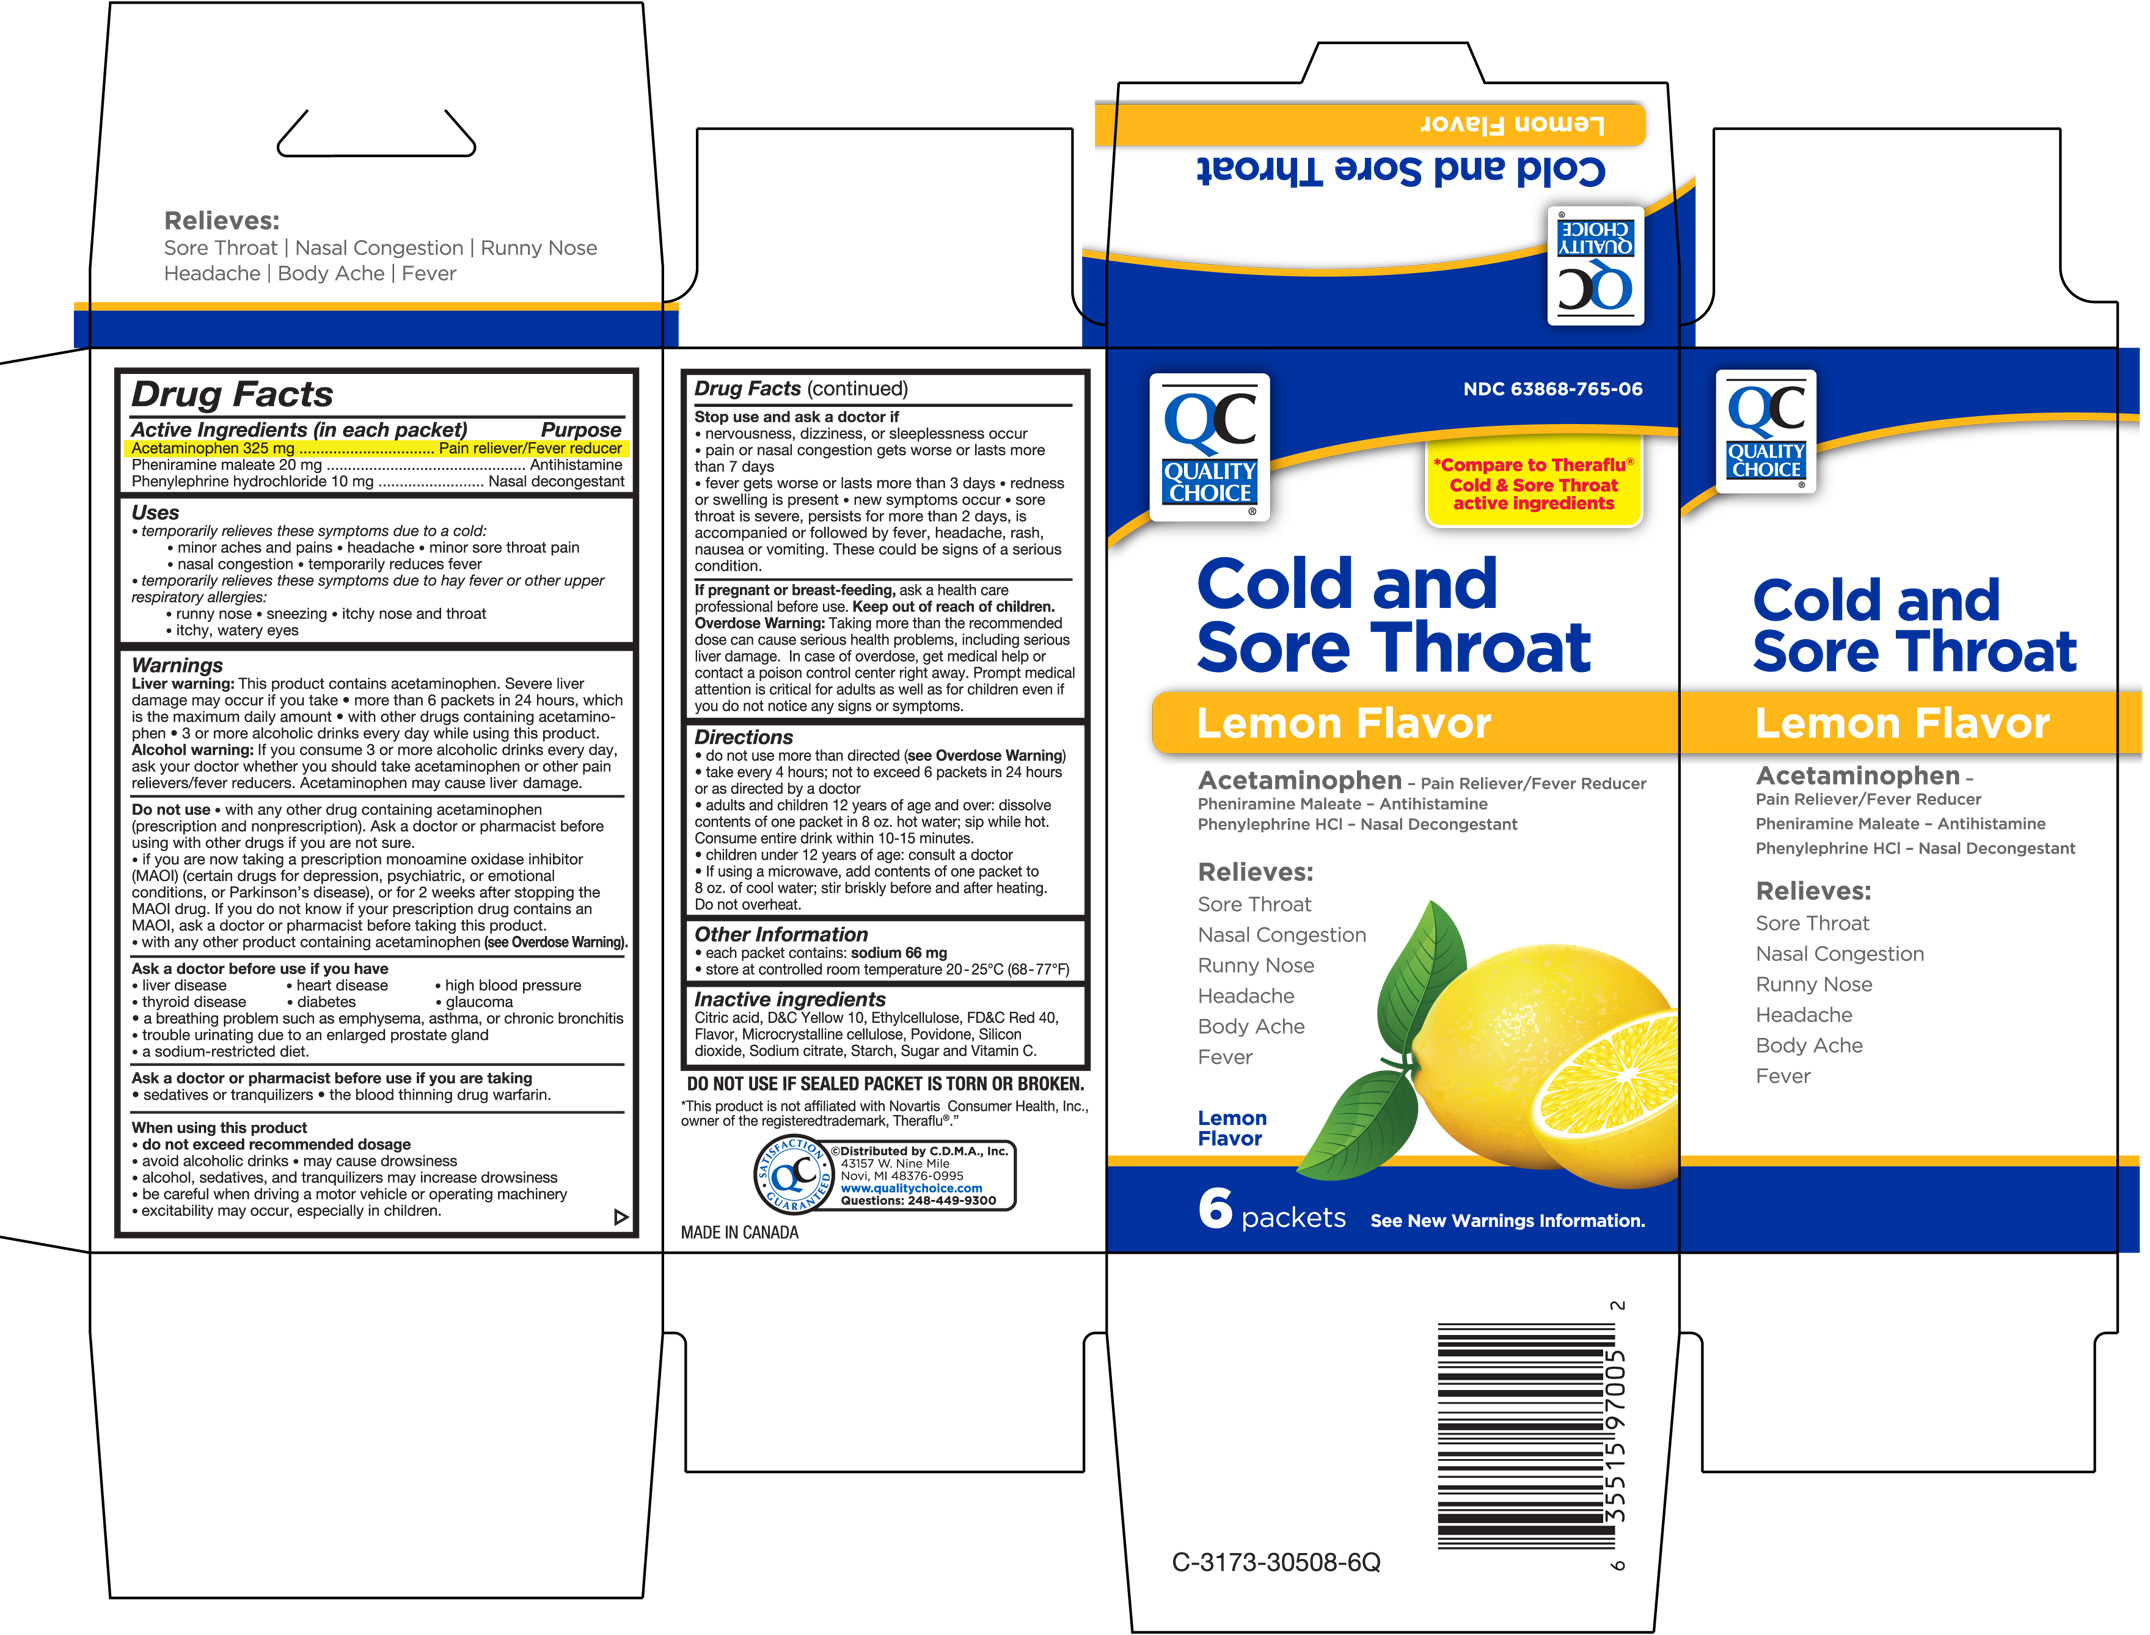 Quality Choice Cold And Sore Throat Lemon Flavor (Acetaminophen, Pheniramine Maleate, Phenylephrine Hcl) Granule, For Solution [Chain Drug Marketing Association]